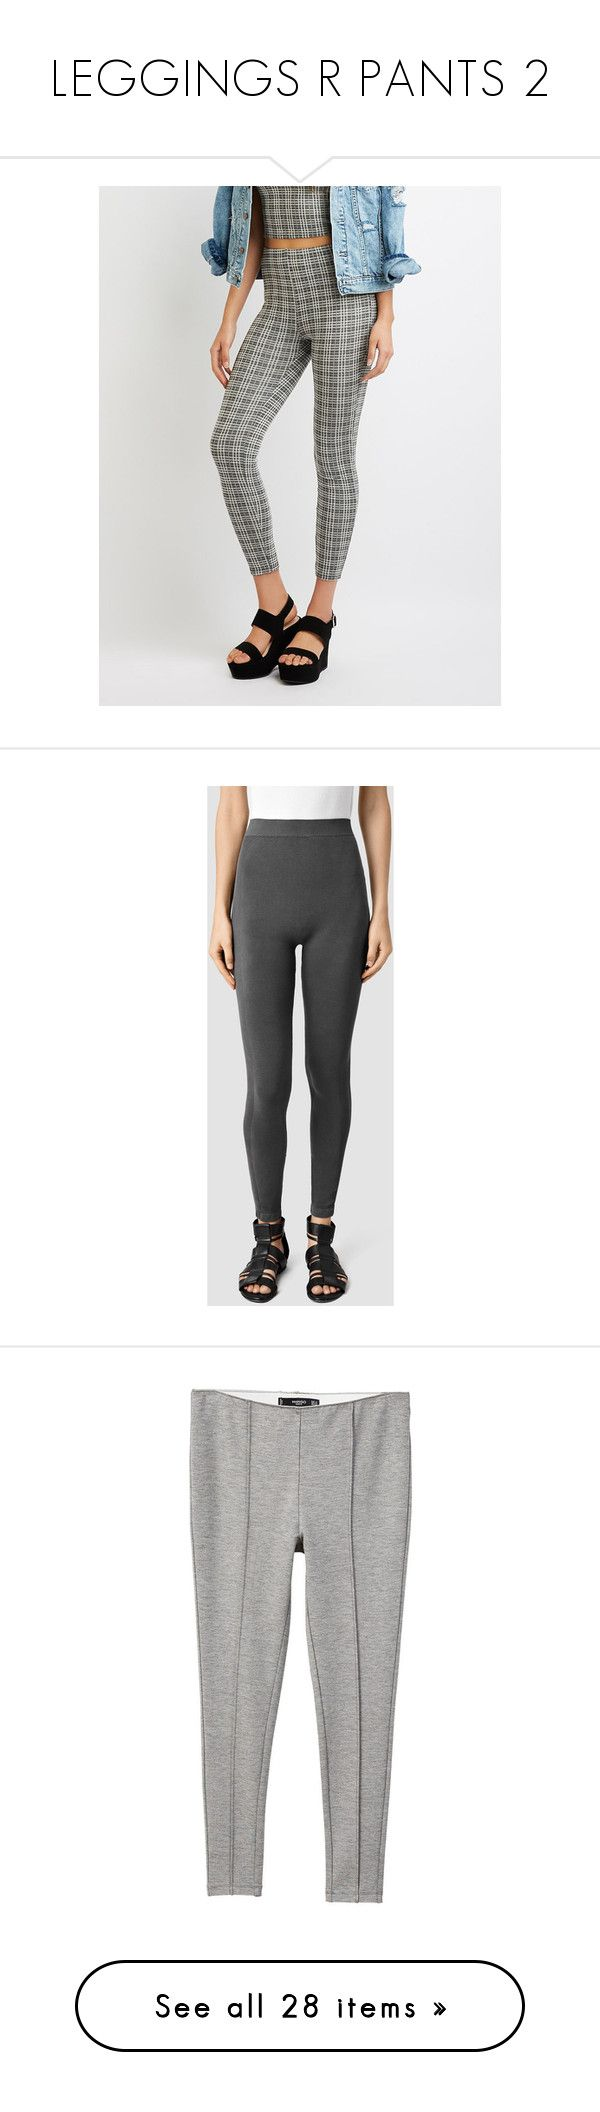 """""""LEGGINGS R PANTS 2"""" by celestialbabeng on Polyvore featuring pants, multi, high rise pants, high waisted skinny trousers, white skinny pants, white high waisted trousers, charlotte russe, leggings, charcoal and charcoal grey leggings"""